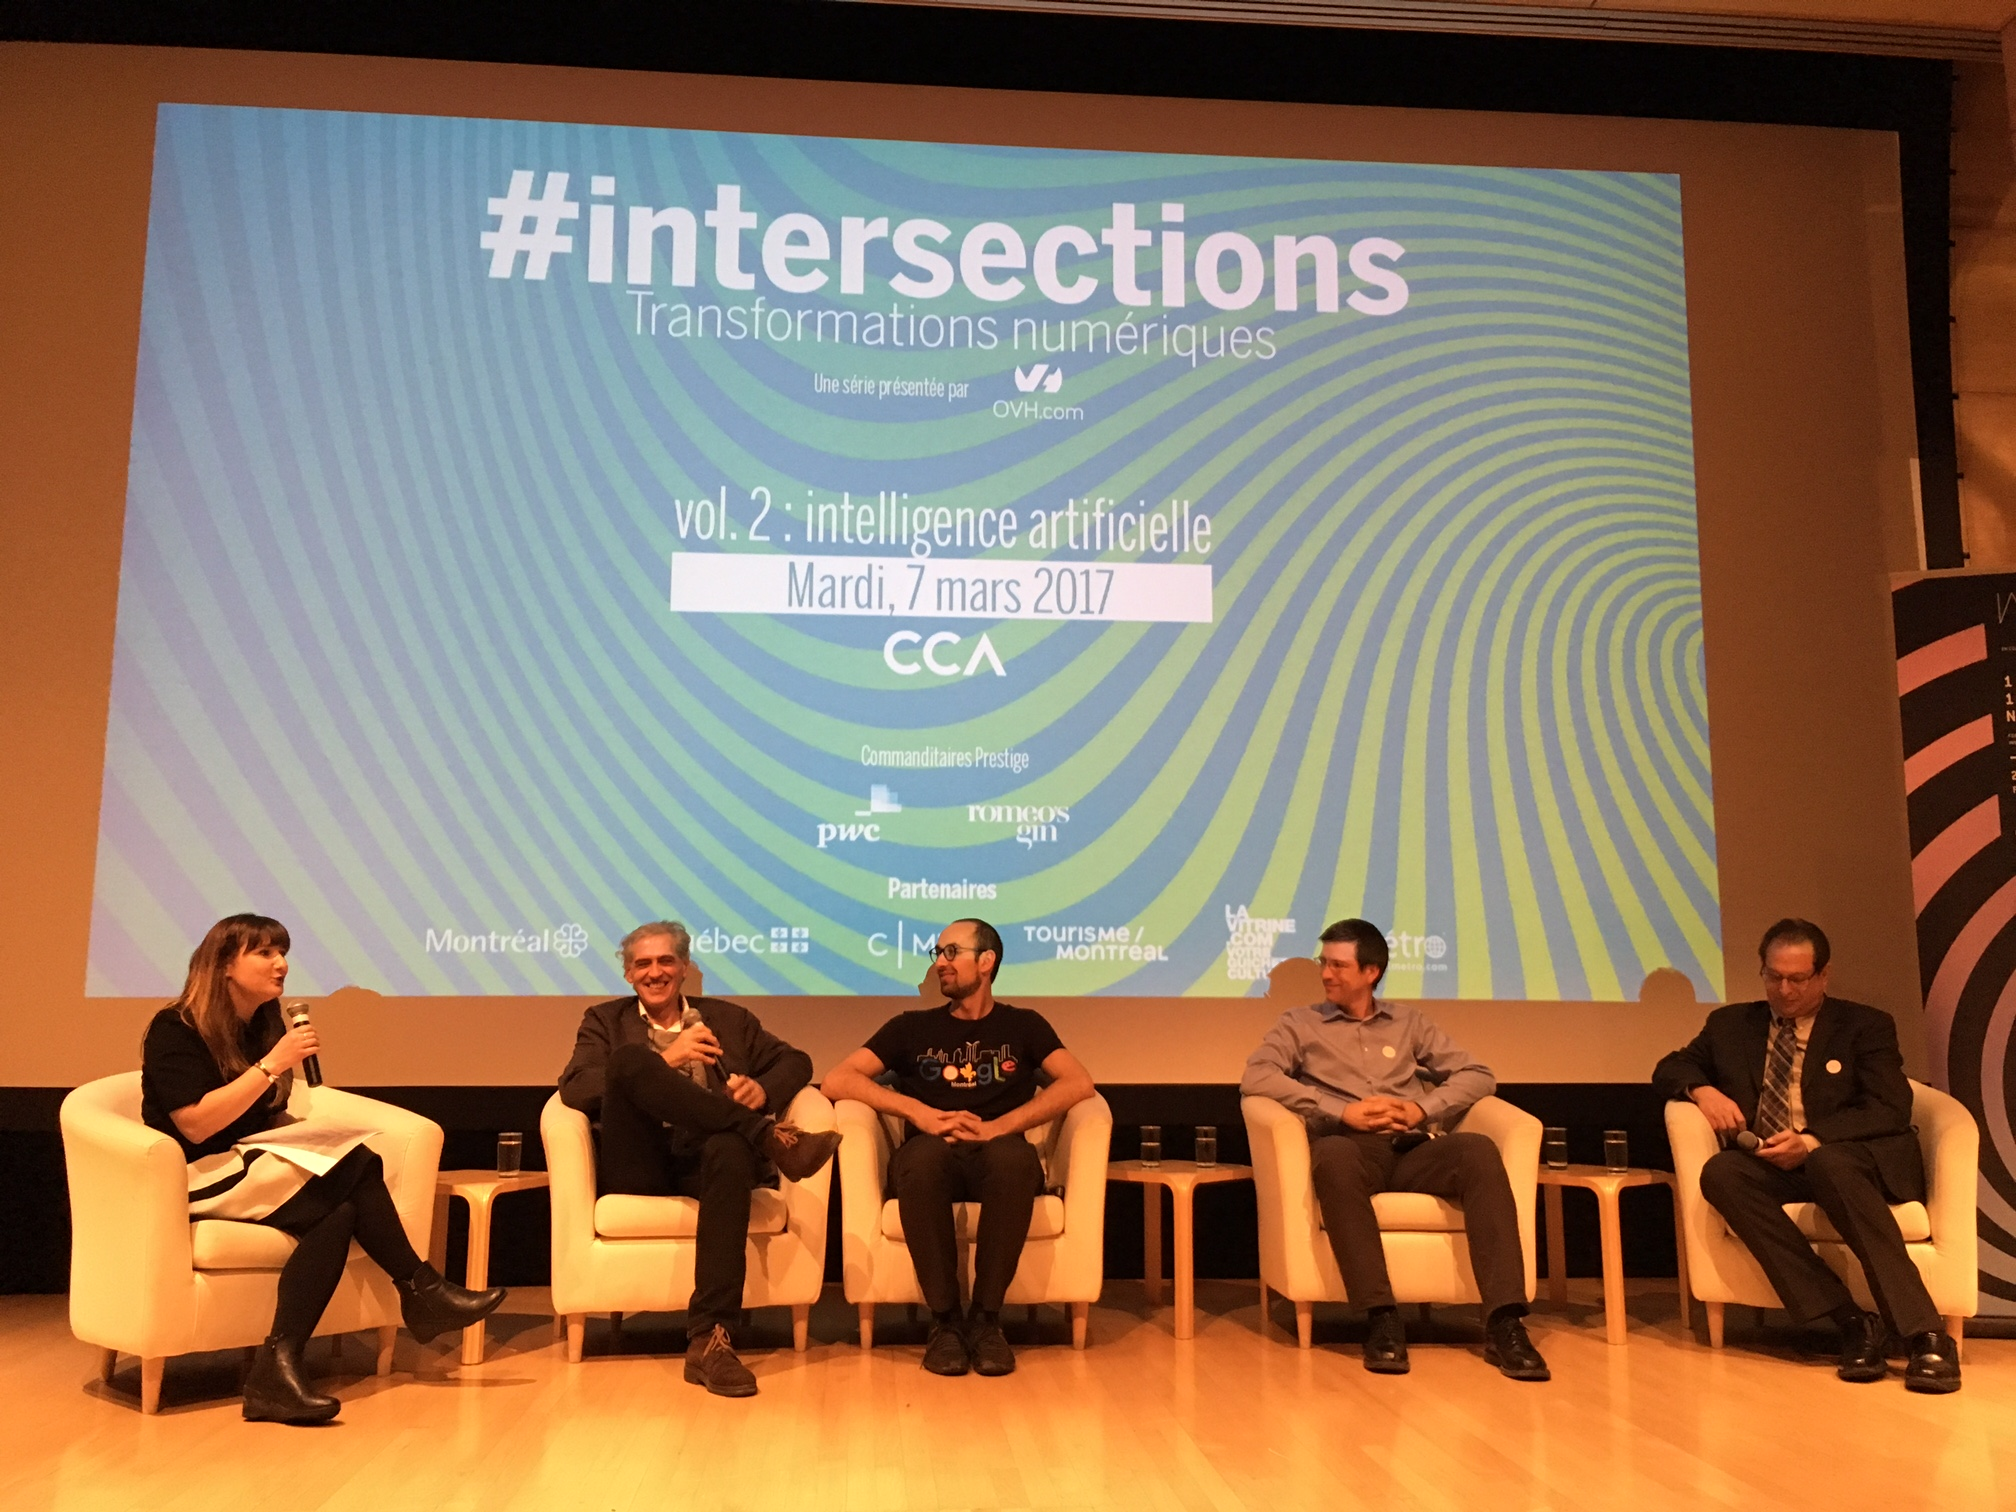 #intersections